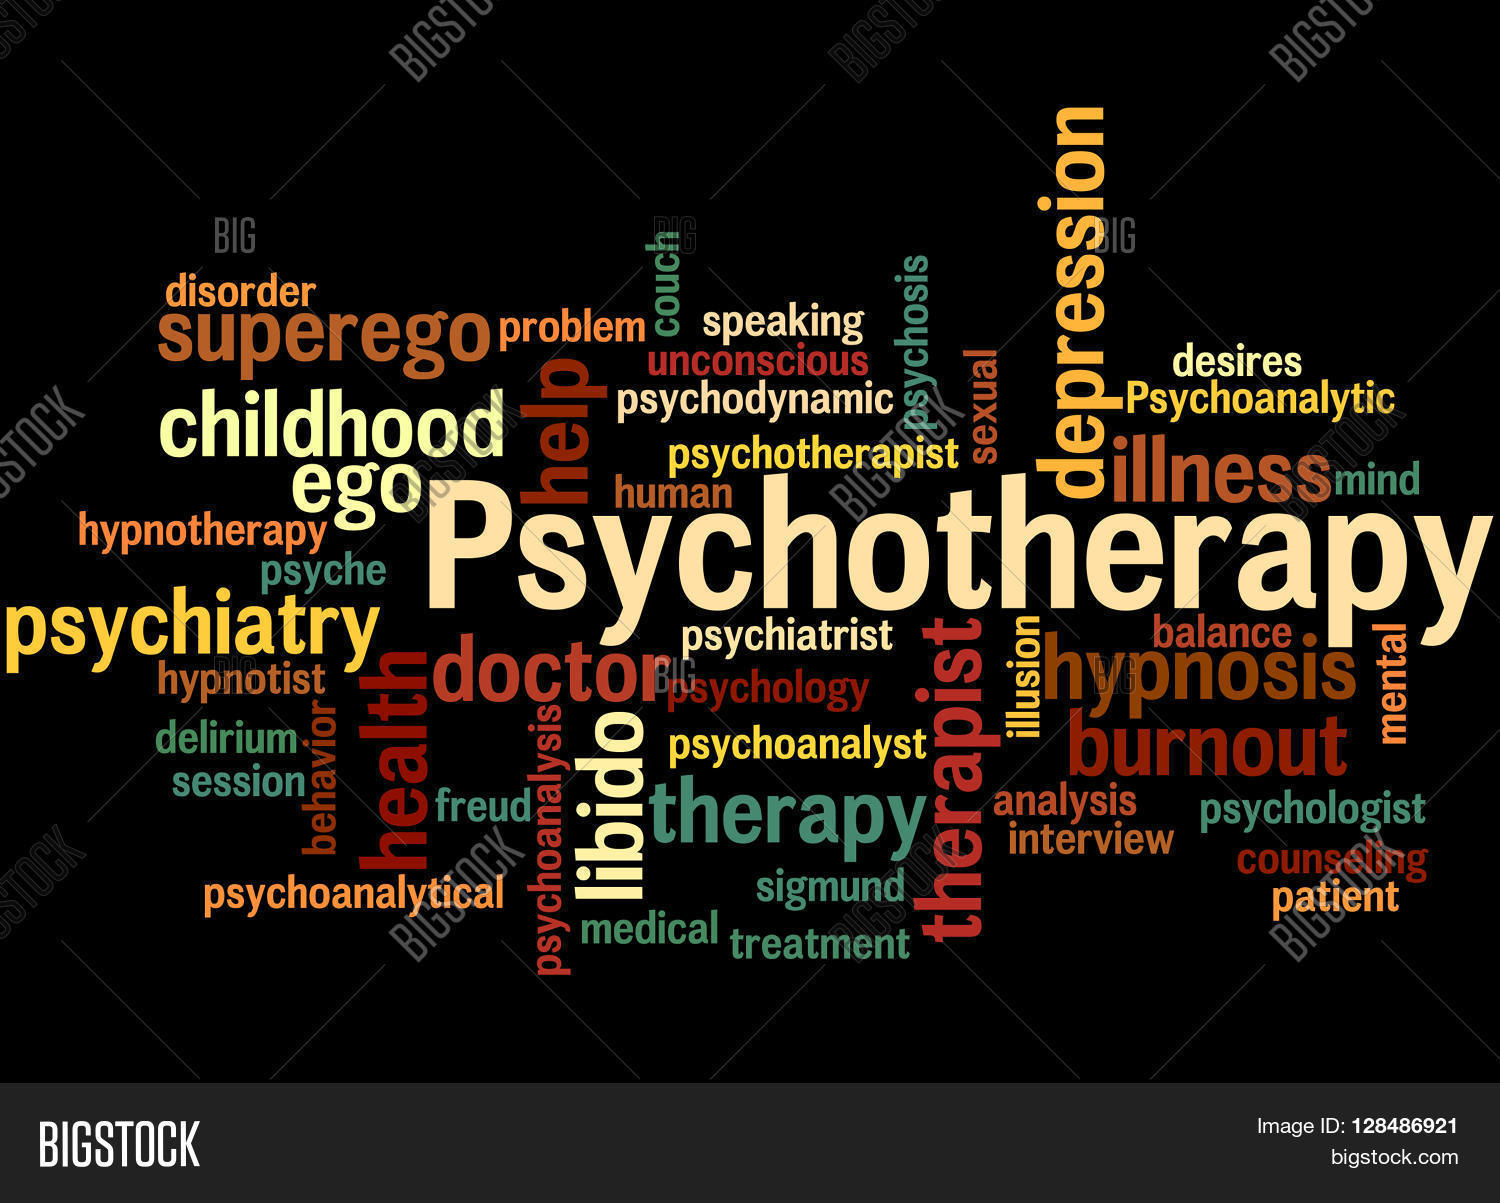 psychodynamic counselling concept Overview of psychodynamic psychotherapy psychodynamic psychotherapy is based on similar concepts to psychoanalysis, but it is a relatively shorter therapy with a more specific focus, such as addressing a relationship issue compared with seeking fundamental changes in personality.